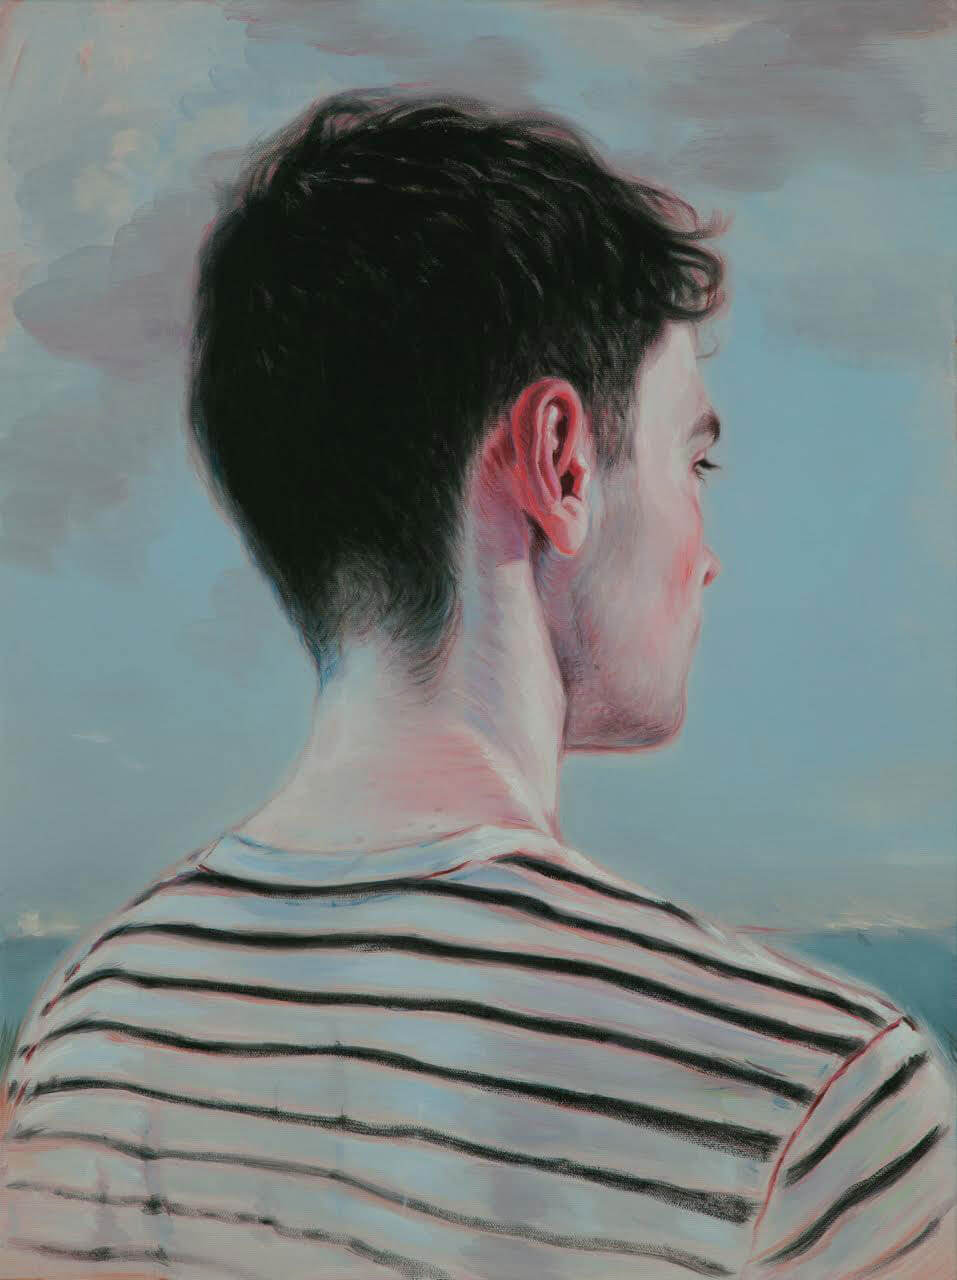 Painting by Kris Knight